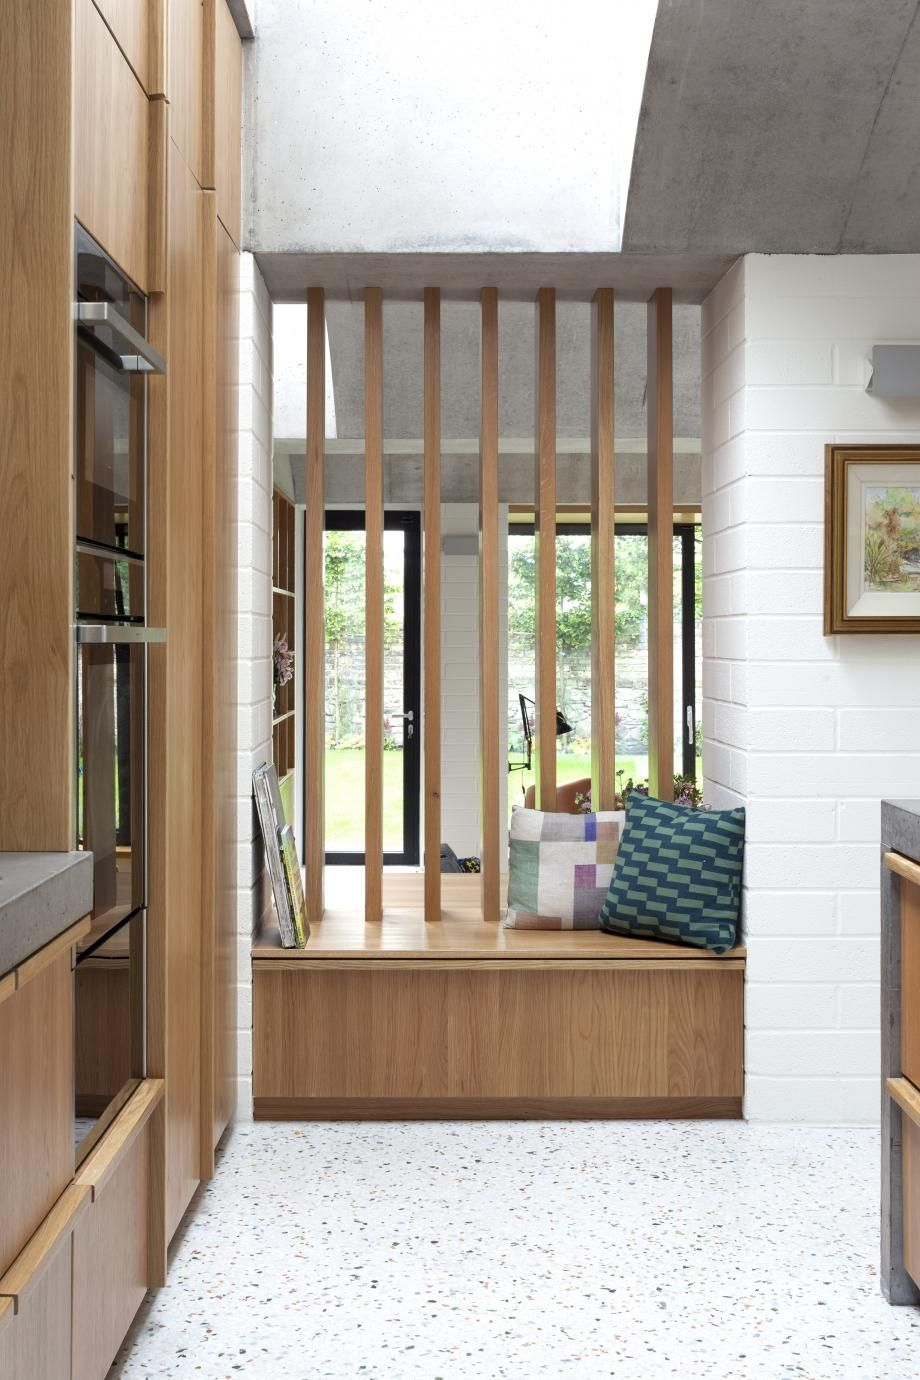 Sundymount village house in dublin by gkmp also gets brutalist makeover architects the rh pinterest